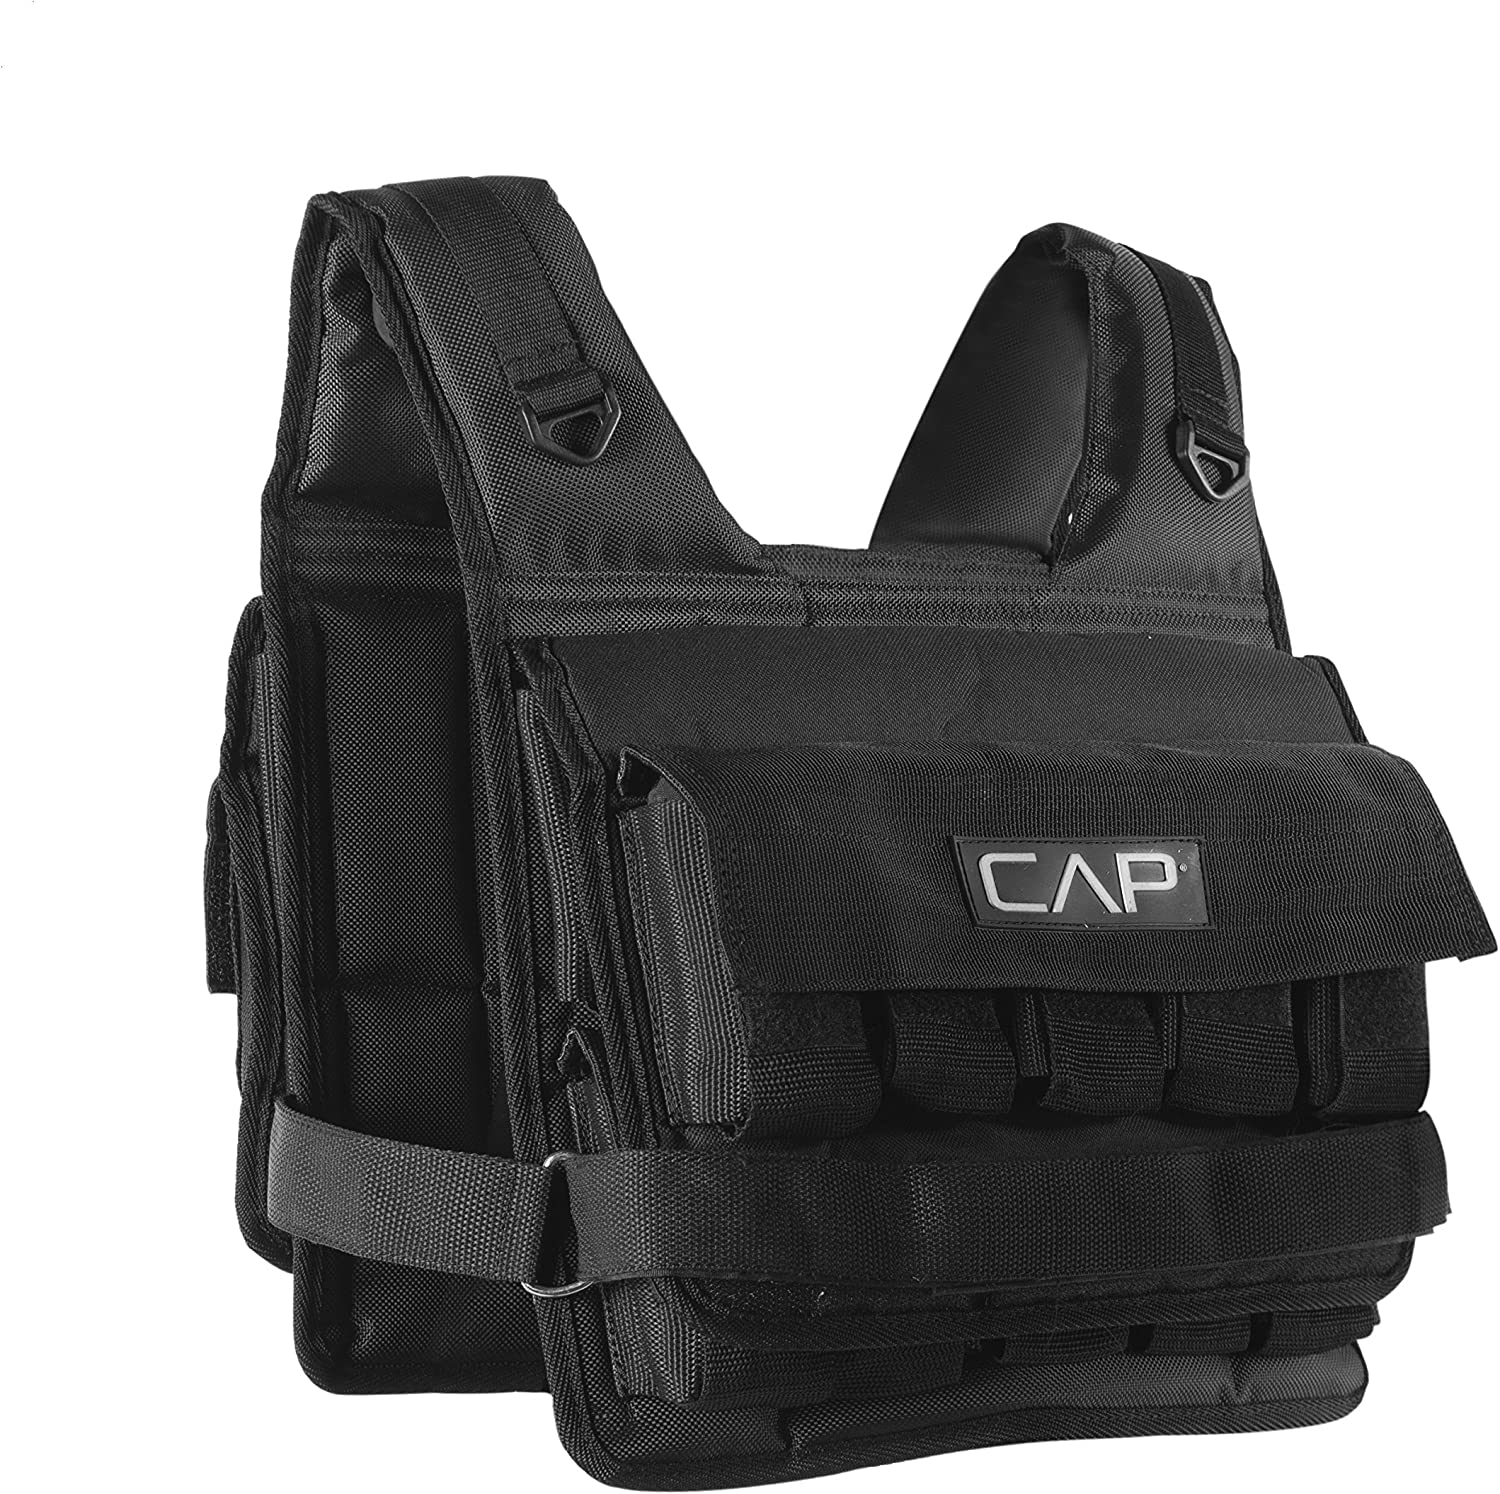 20-Pound Adjustable Weighted Vest CAP Barbell HHWV-CB020C